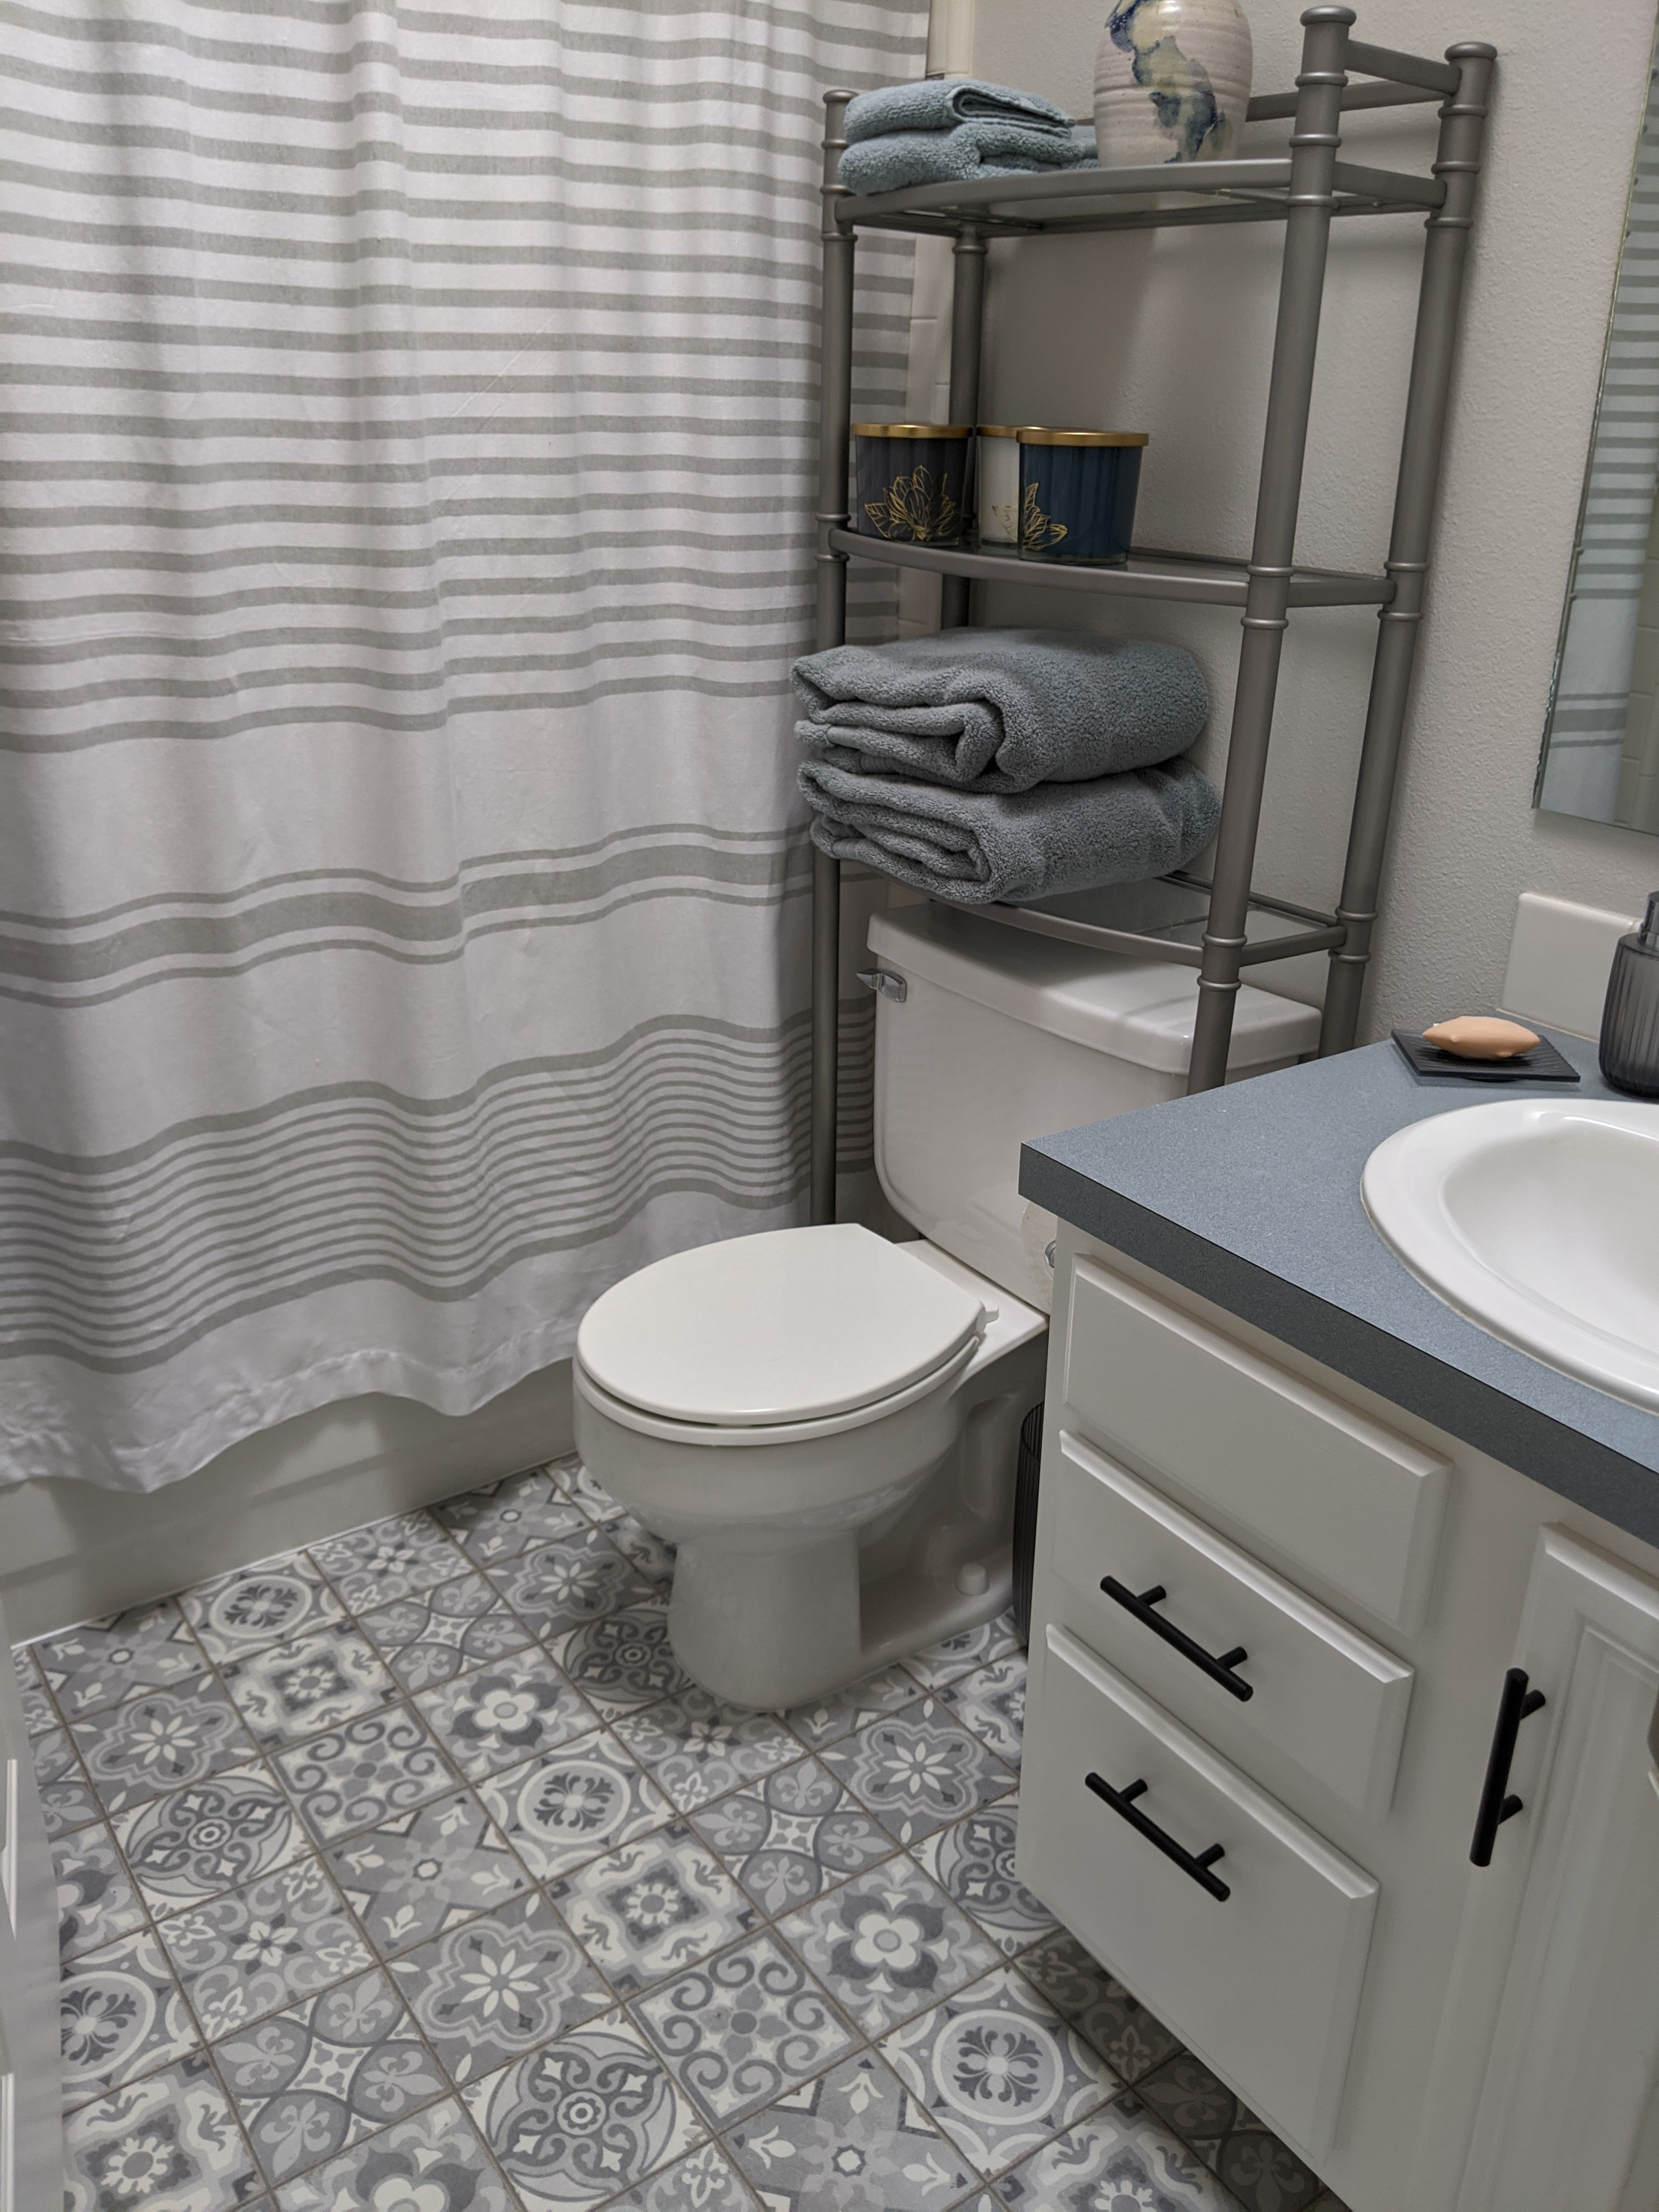 Customer review image of  in Upstairs bathroom